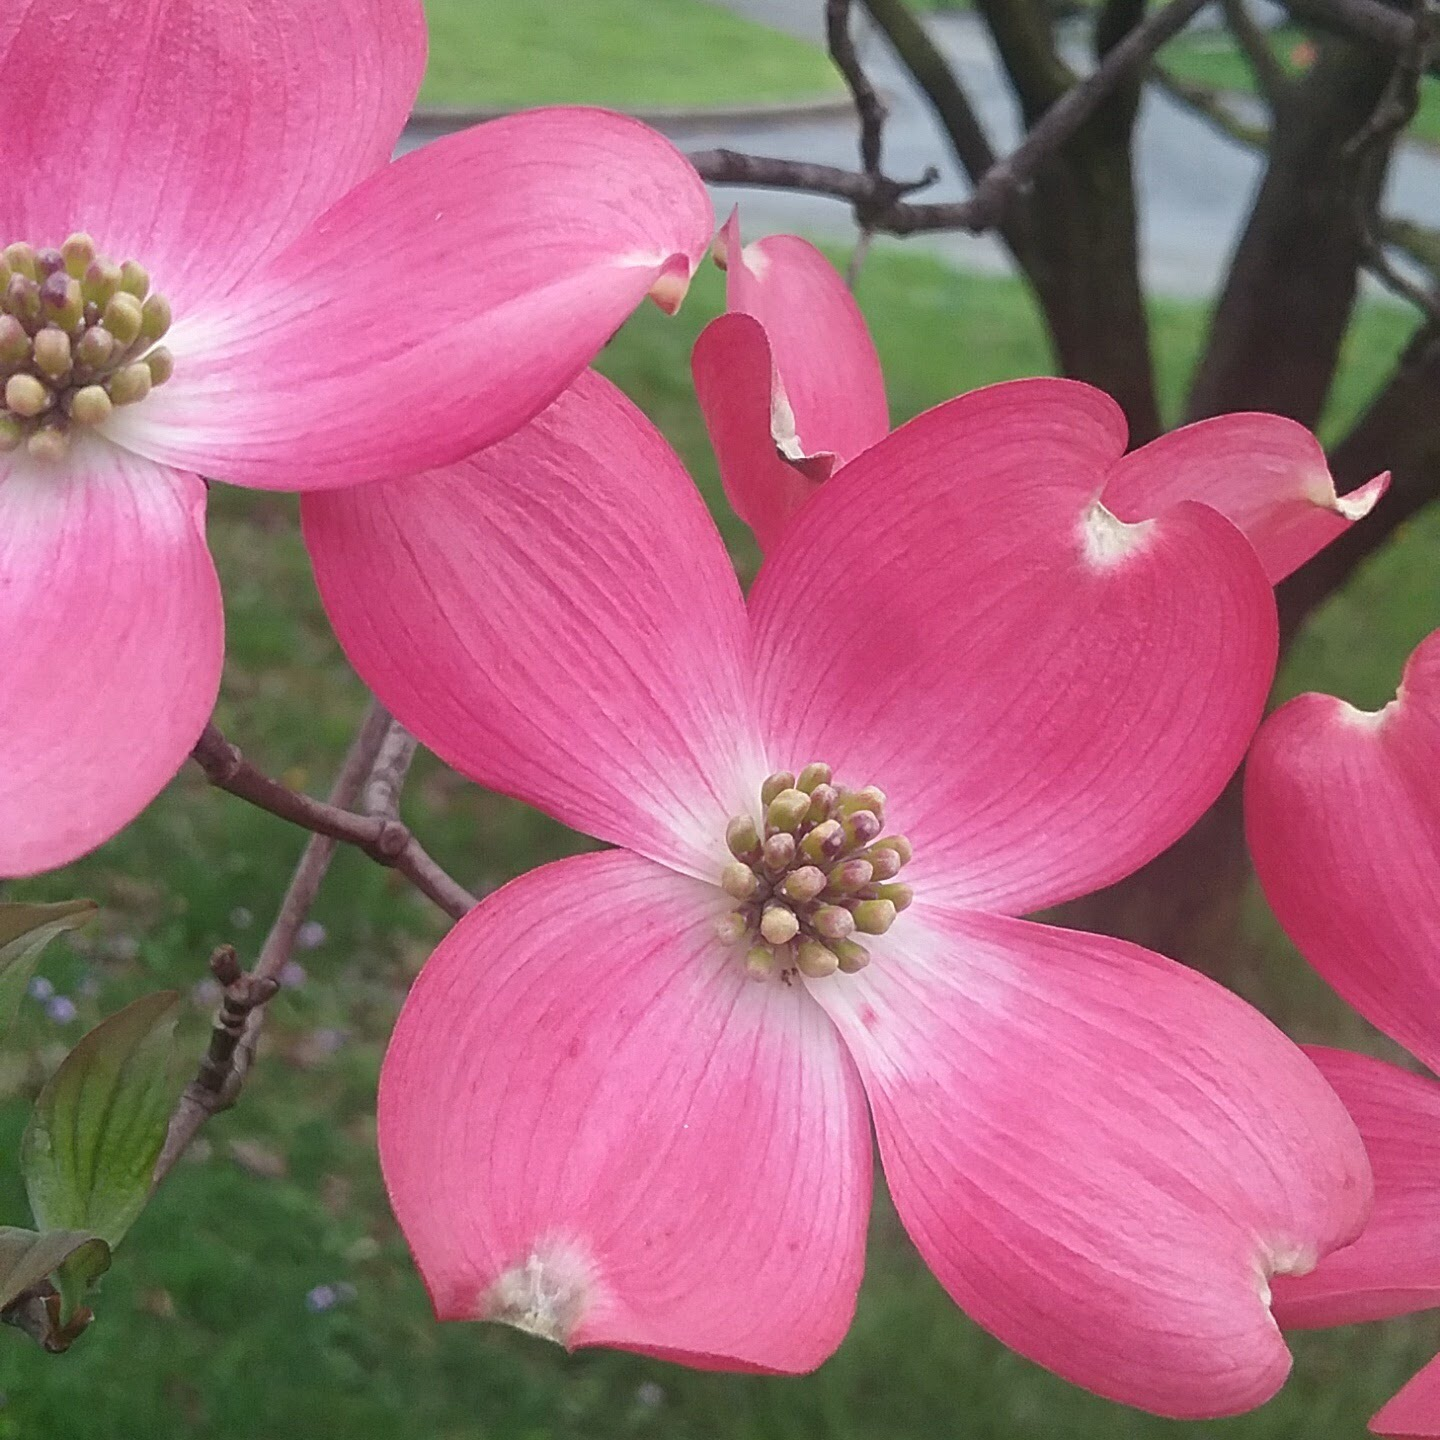 Dogwood blossom close-up